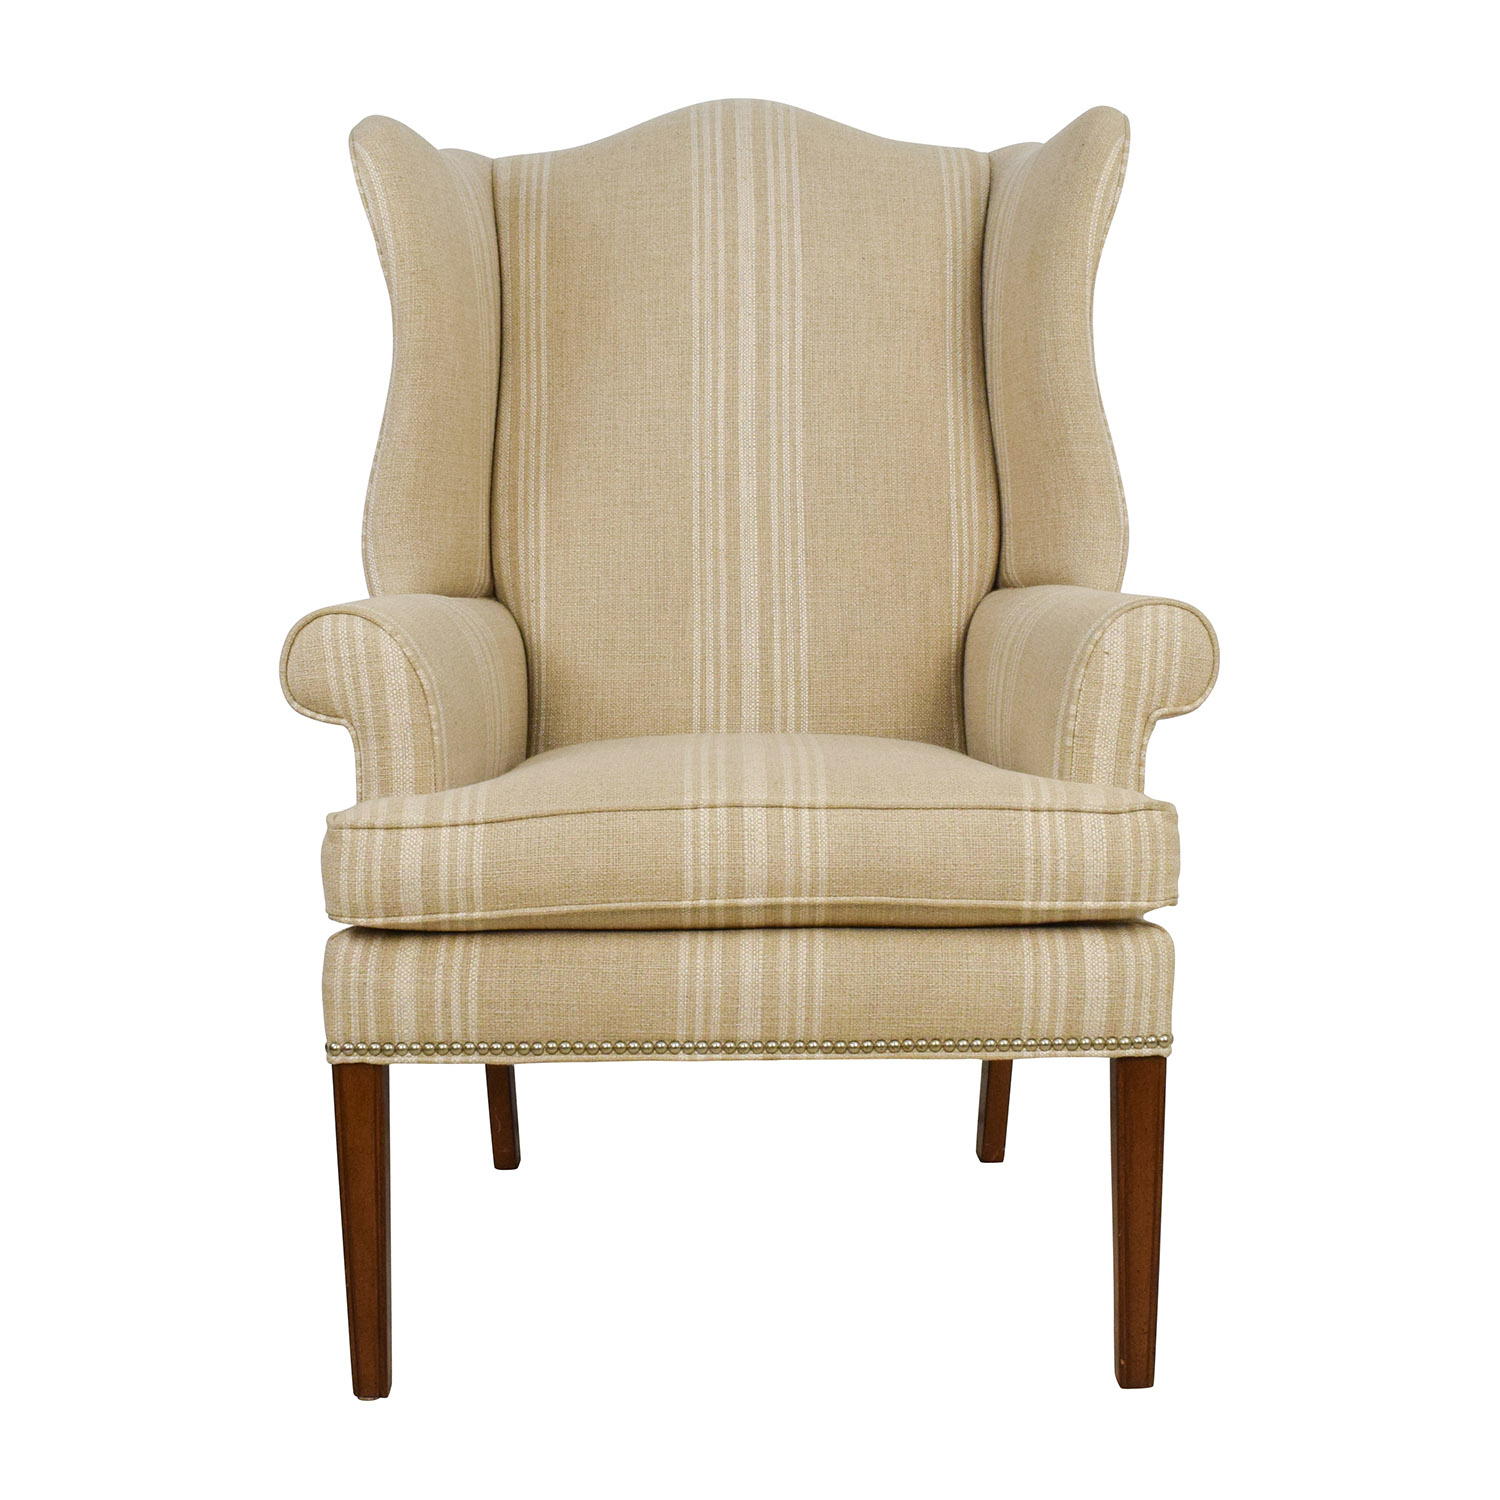 Ethan Allen Ethan Allen Skylar Stripped Wing Chair tan